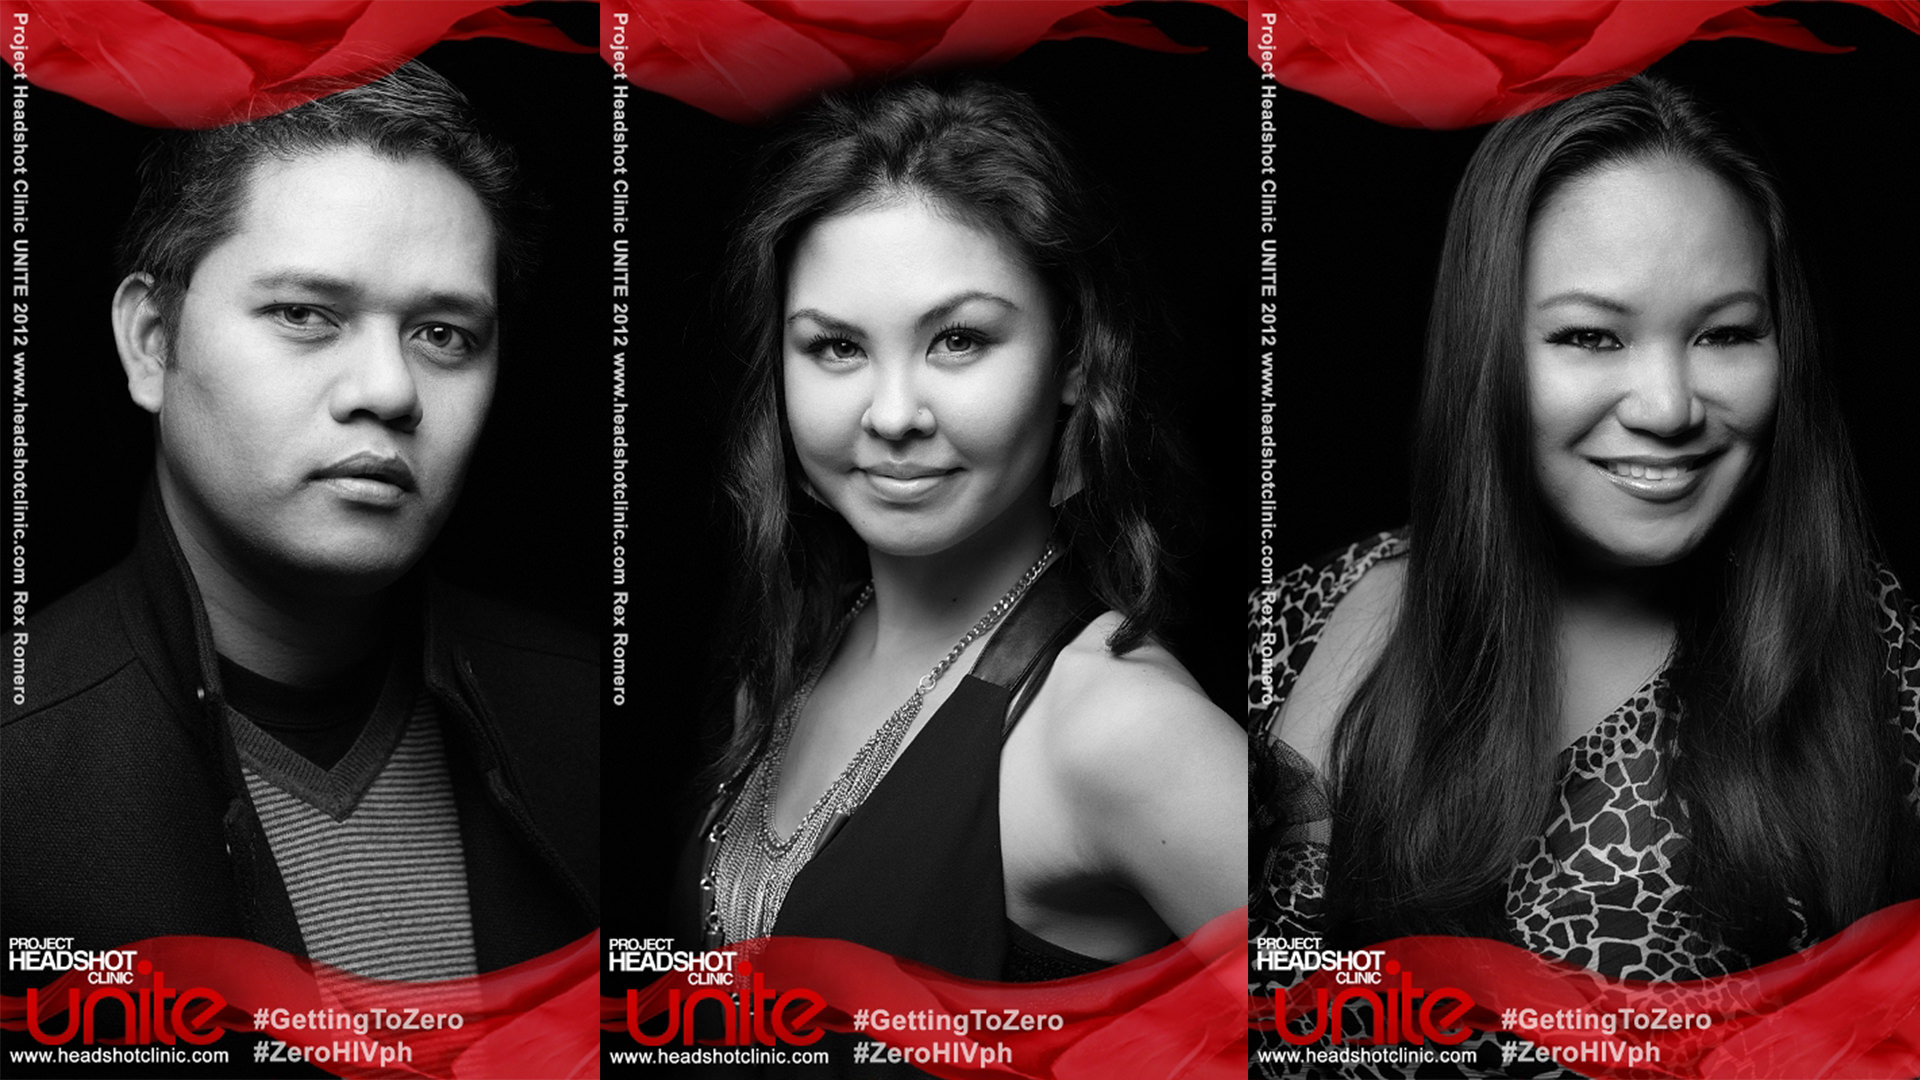 UNITE - a Project Headshot Clinic campaign for AIDS/HIV prevention awareness, led by photographer Niccolo Cosme.